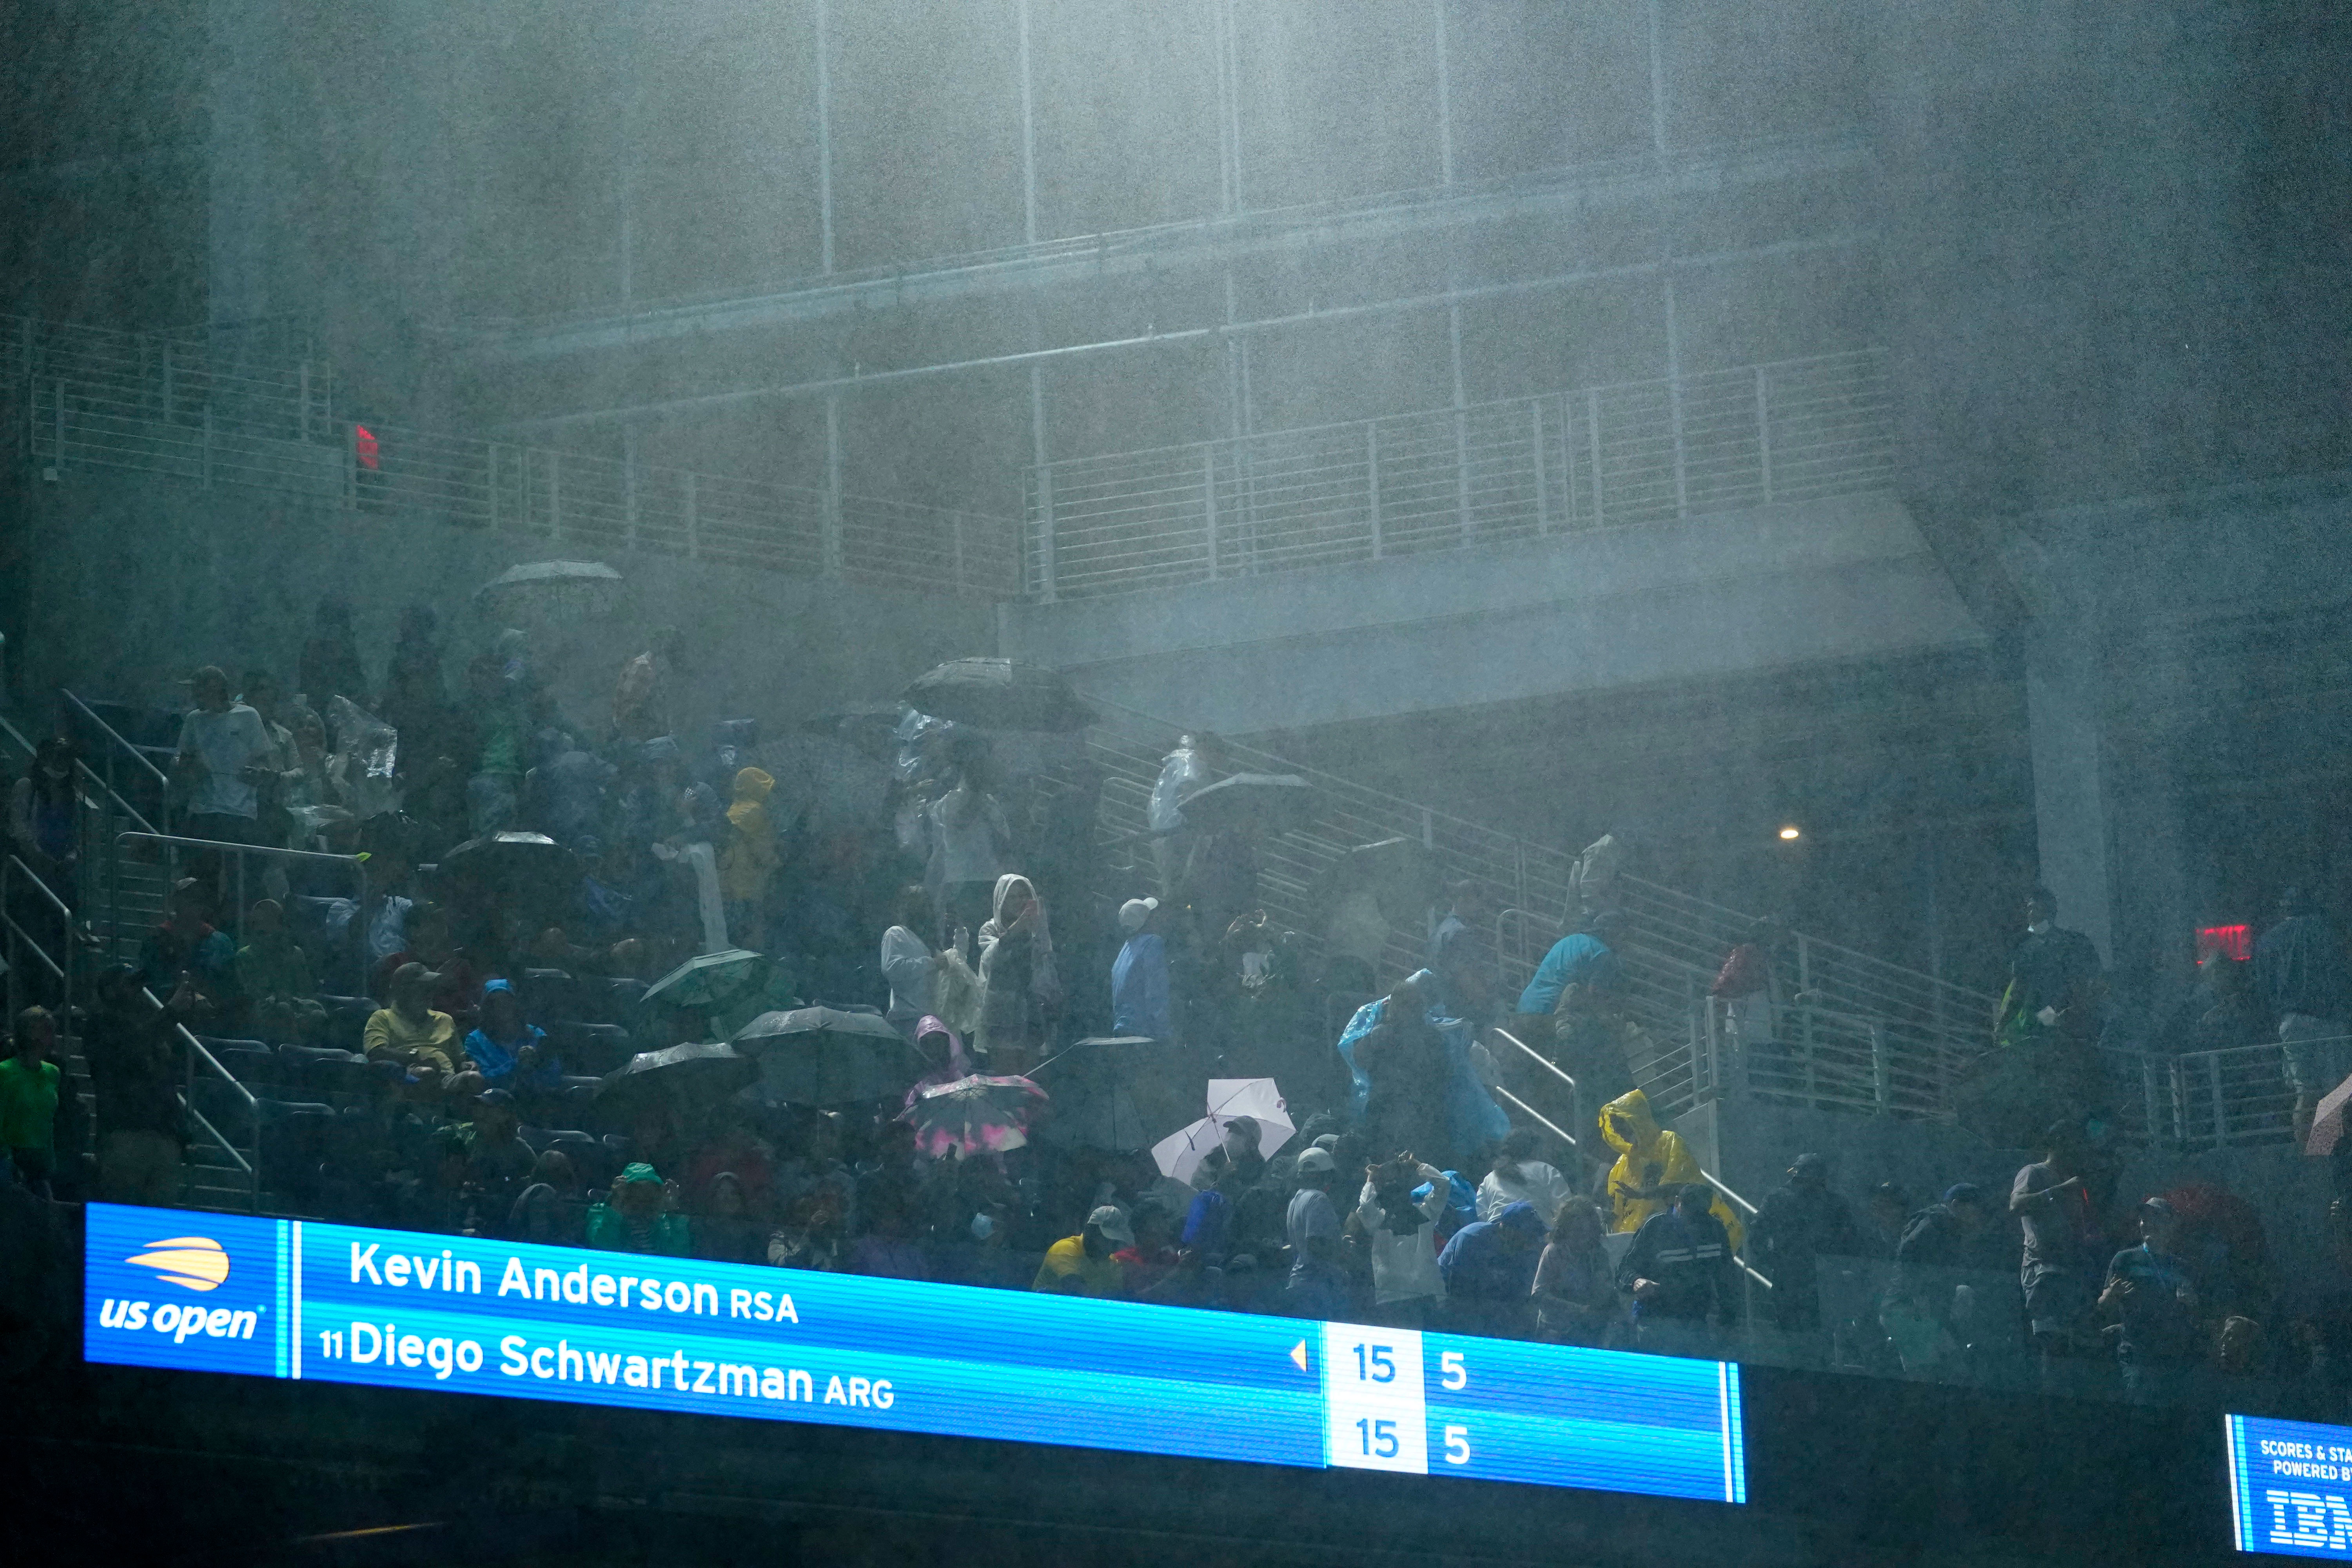 Rain falls into Louis Armstrong Stadium from the openings along the sides during a US Open tennis match between Diego Schwartzman and Kevin Anderson in Queens, New York, on September 1.